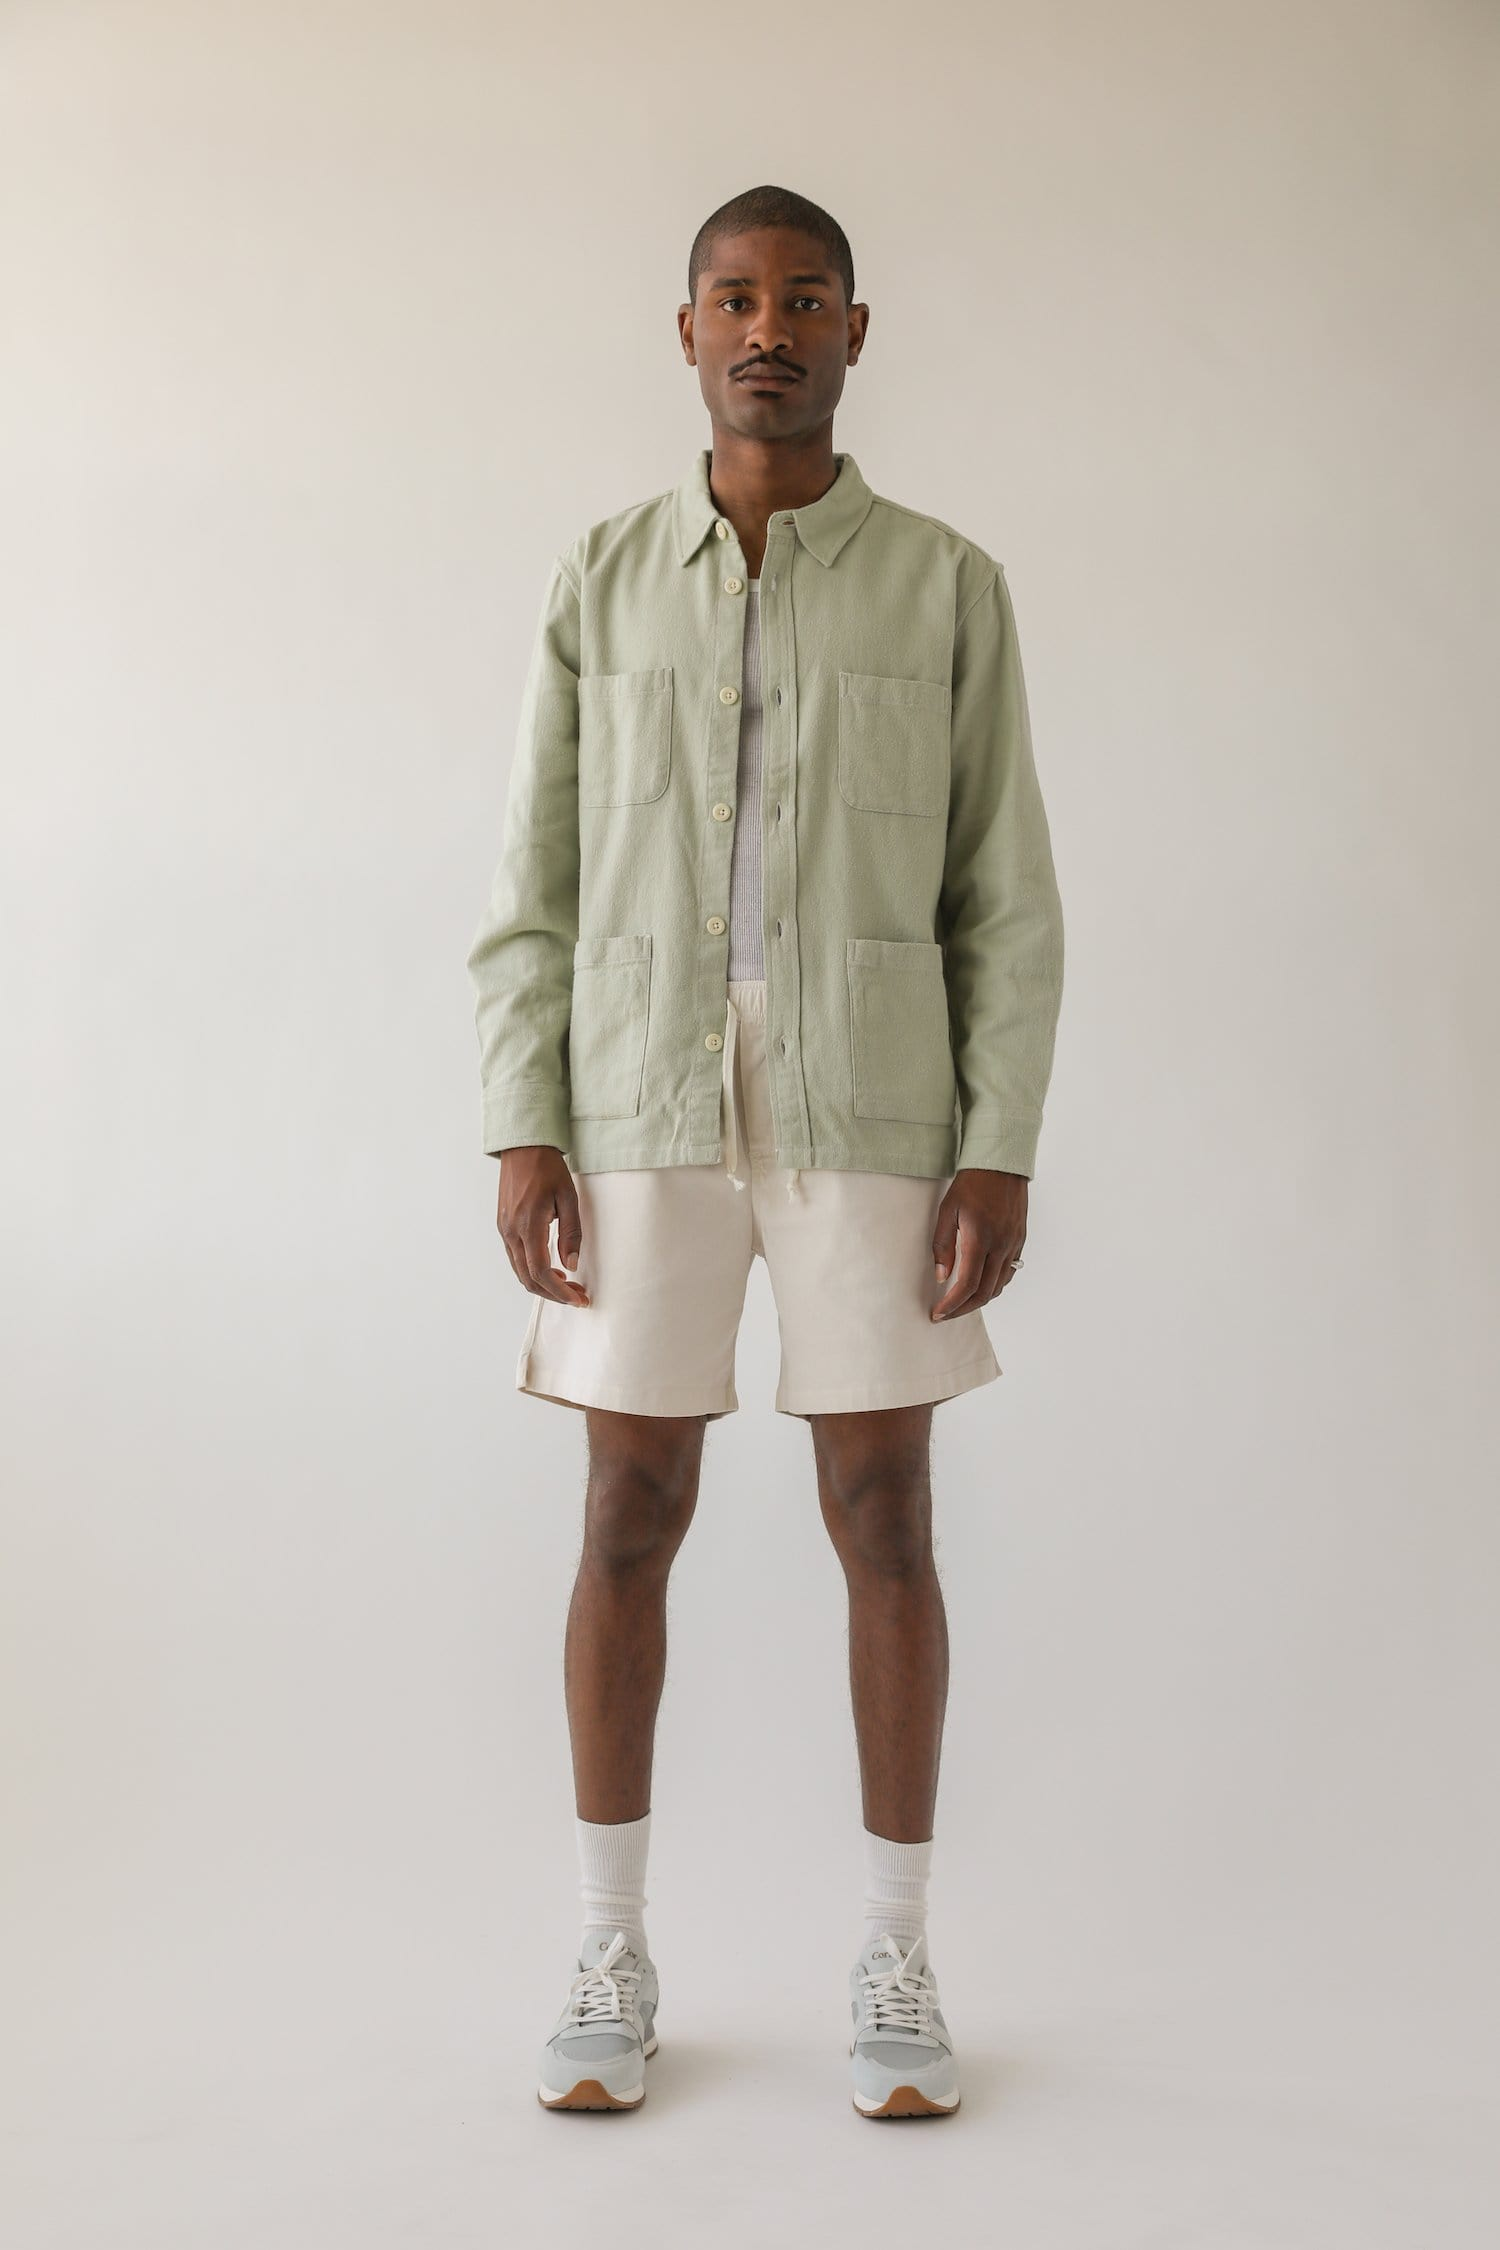 SSB Lint Olive Beach Blanket Jacket